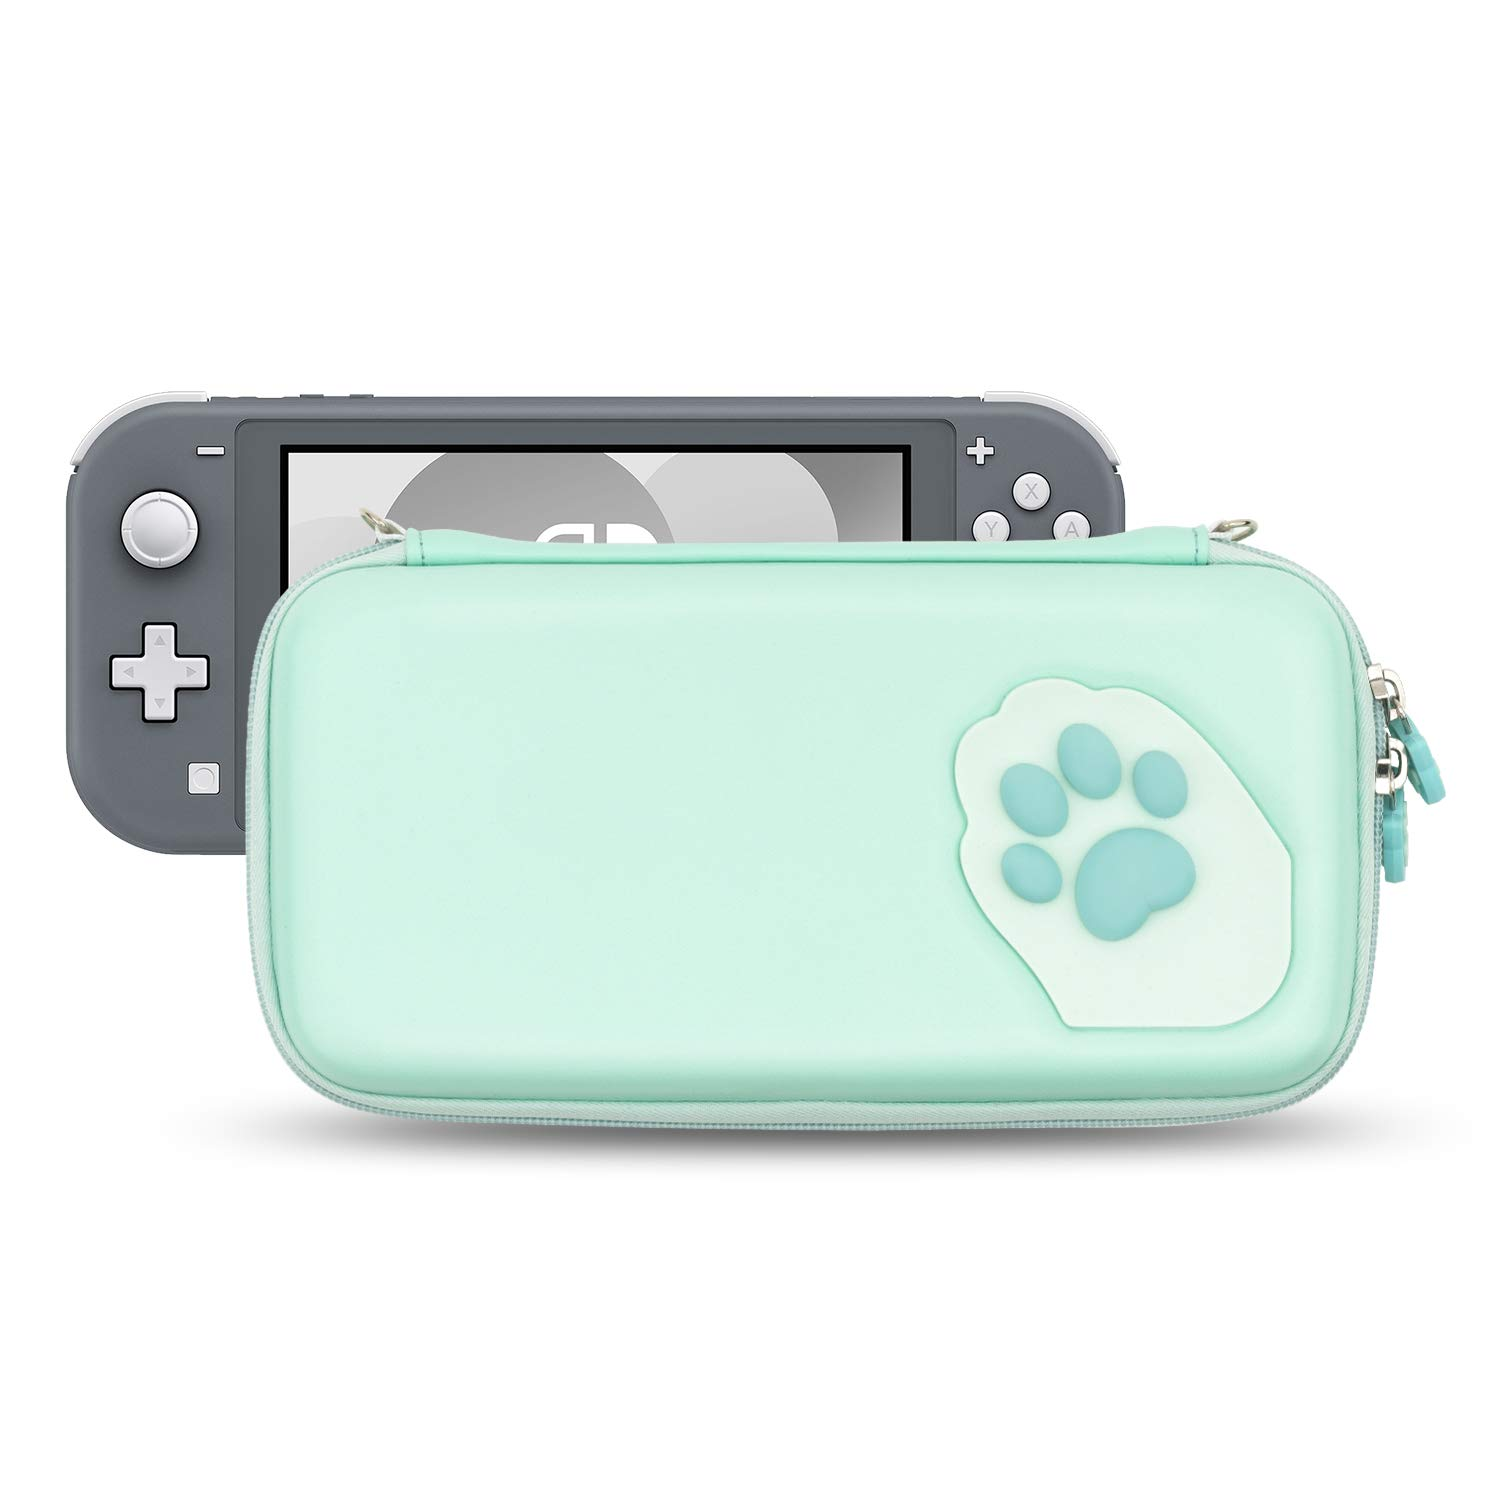 Geekshare Cute Cat Claw Case Compatible with Nintendo Switch Lite- Portable Hardshell Slim Travel Carrying Case fit Switch Lite & Game Accessories - A Removable Wrist Strap (Green)